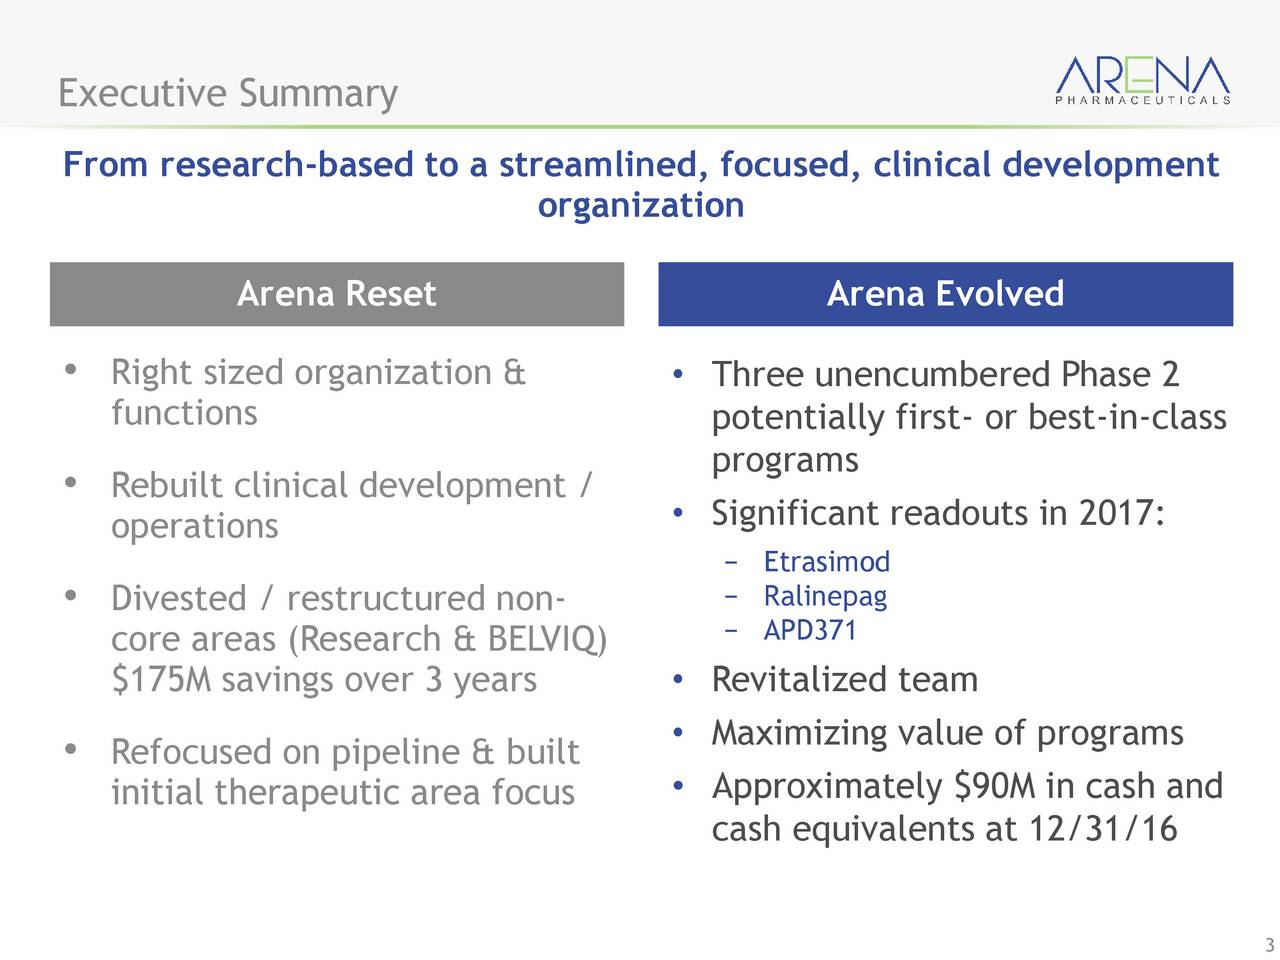 From research-based to a streamlined, focused, clinical development organization Arena Reset Arena Evolved Right sized organization &  Three unencumbered Phase 2 functions potentially first- or best-in-class programs Rebuilt clinical development / operations  Significant readouts in 2017: Etrasimod Divested / restructured non-  Ralinepag core areas (Research & BELVIQ)  APD371 $175M savings over 3 years  Revitalized team Refocused on pipeline & built  Maximizing value of programs Approximately $90M in cash and initial therapeutic area focus cash equivalents at 12/31/16